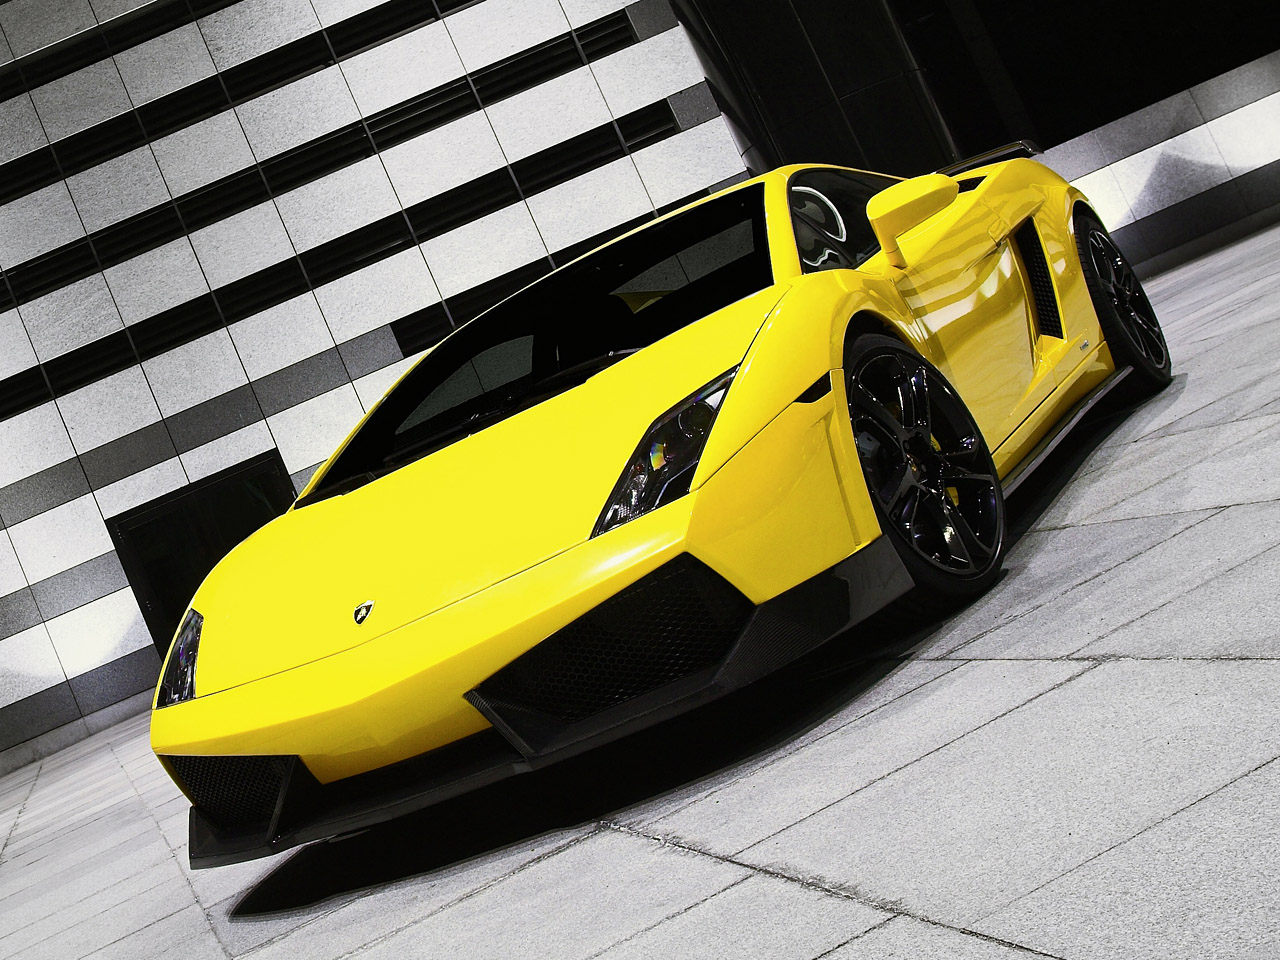 Lamborghini Gallardo GT600 Modified By BF Performance GAMBAR FOTO